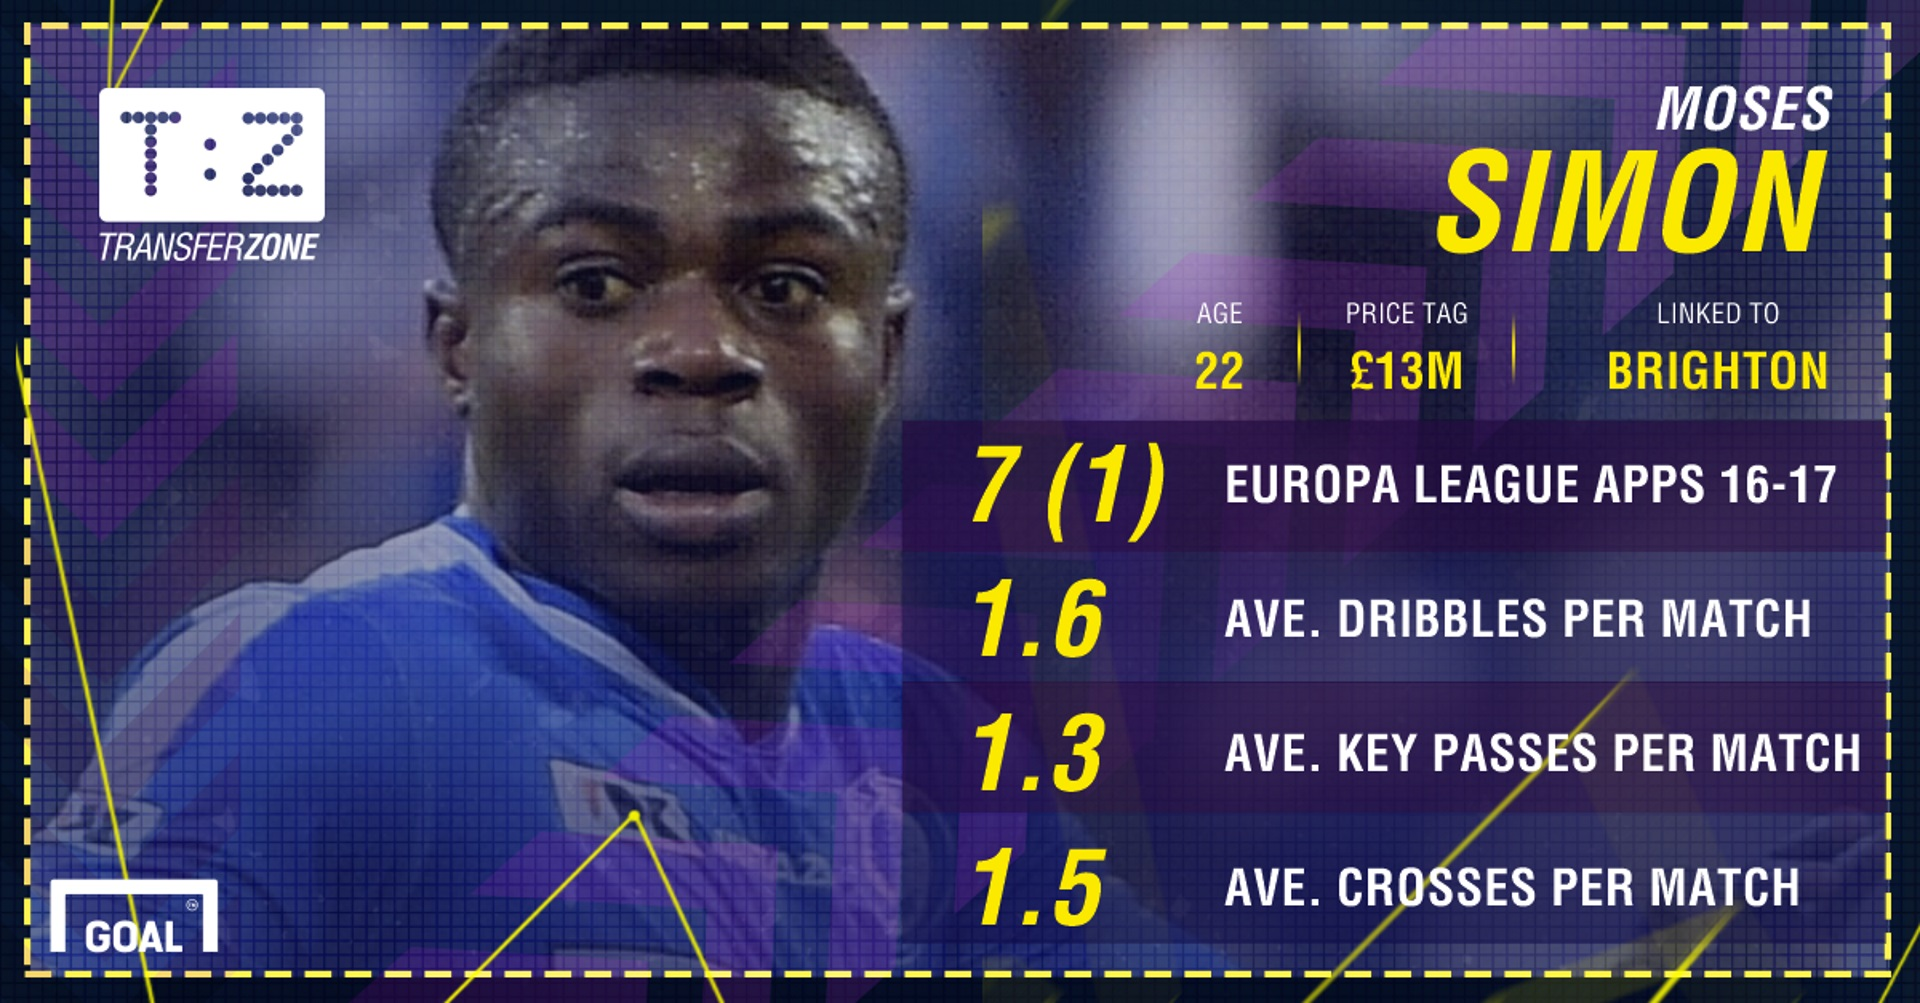 Moses Simon PS